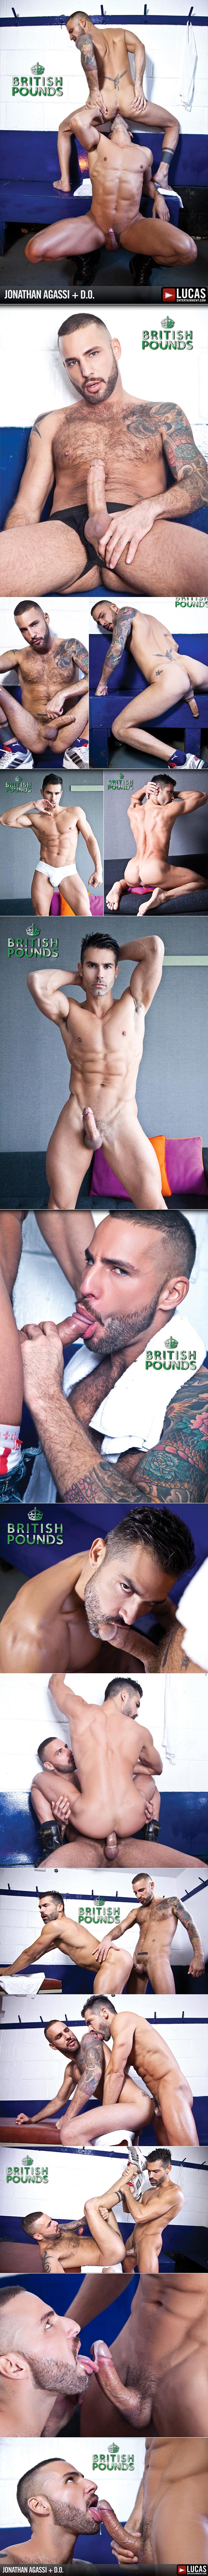 "LucasEntertainment: D.O. and Jonathan Agassi work up a sweat in ""British Pounds"""